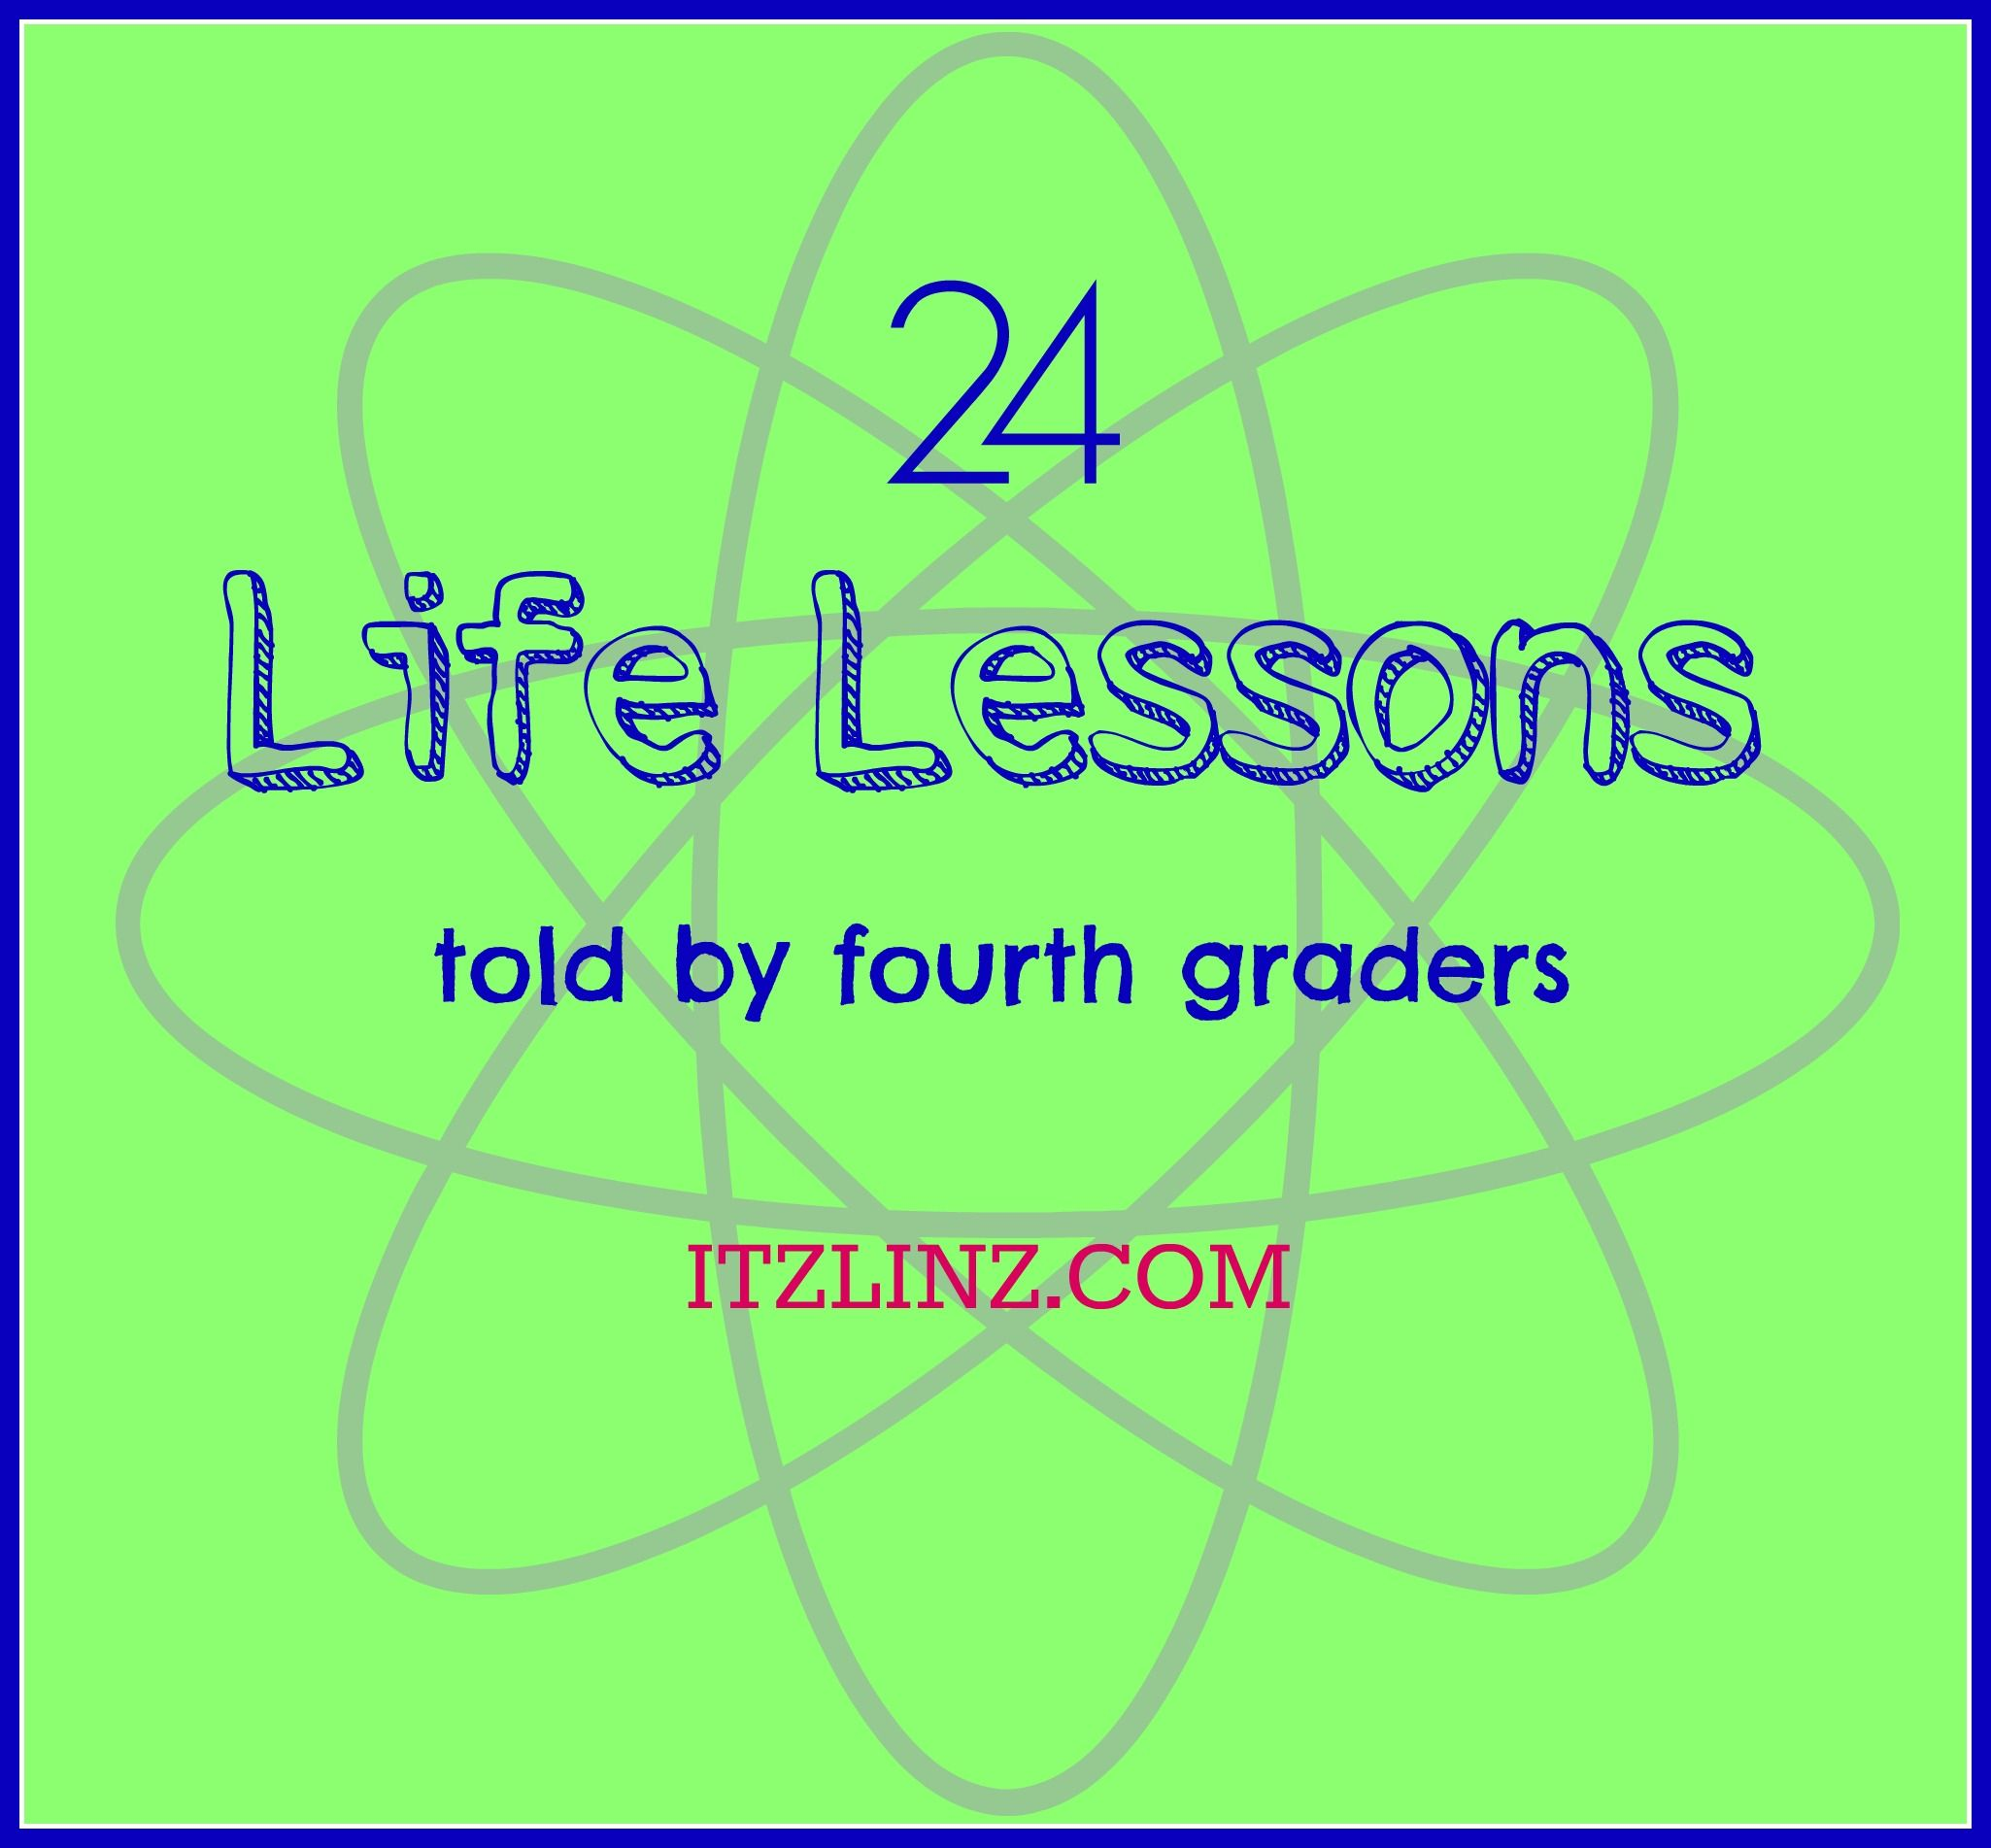 Quotes On Life Lessons For Teenagers: 24 Life Lessons (told By Fourth Graders) Great Lesson For